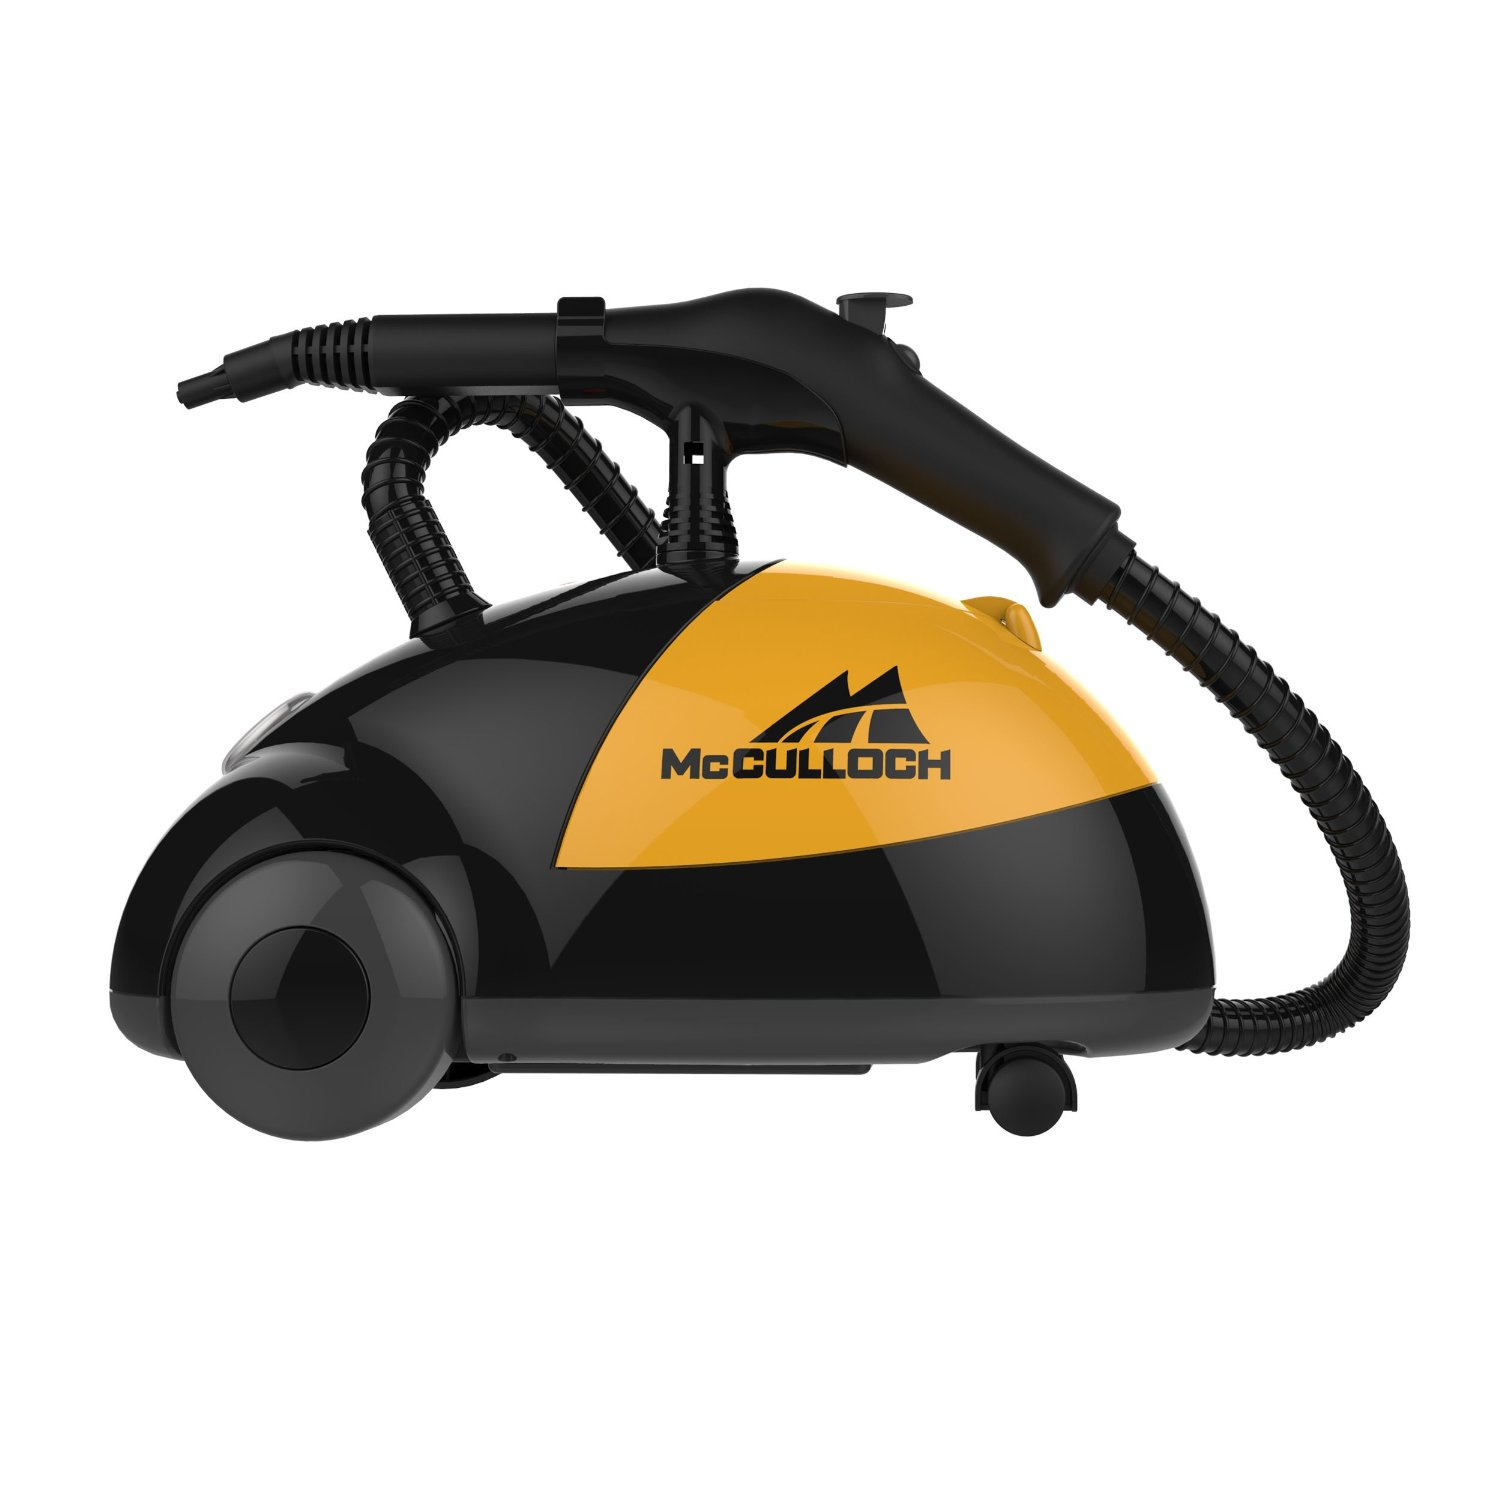 What I Liked About The Mc1275 Mcculloch Steam Cleaner My